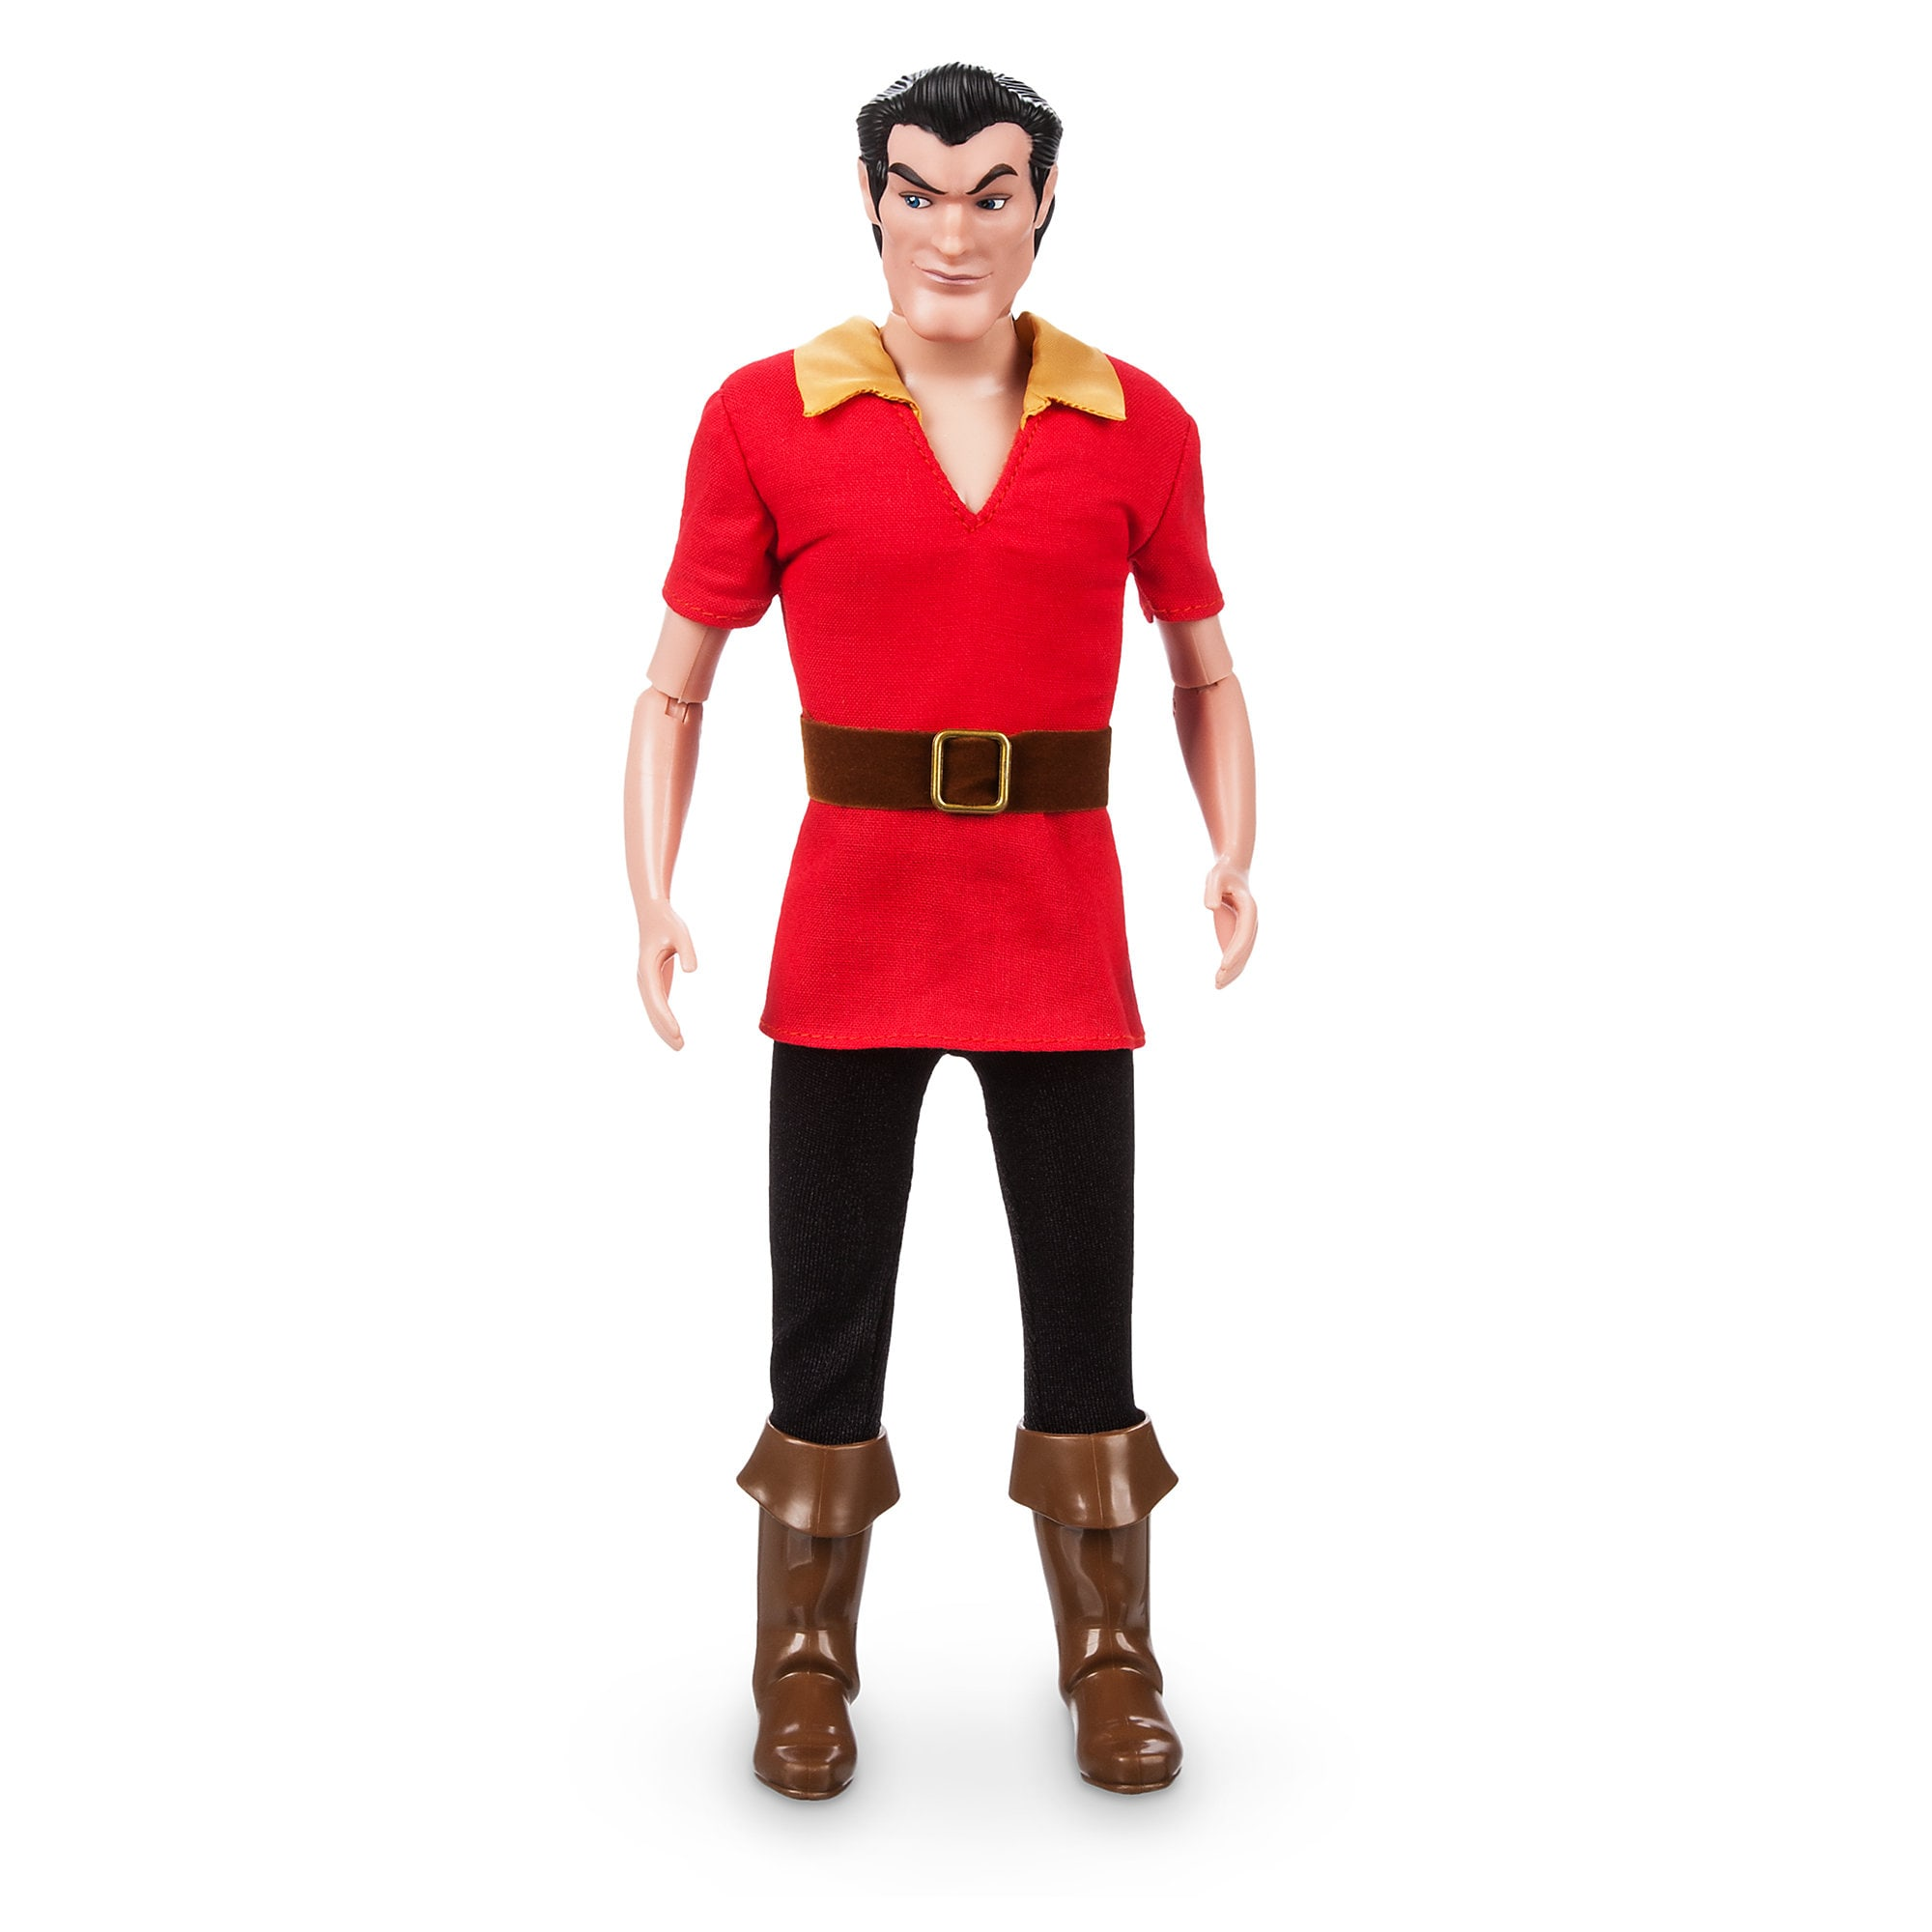 Gaston Classic Doll - Beauty and the Beast - 12''